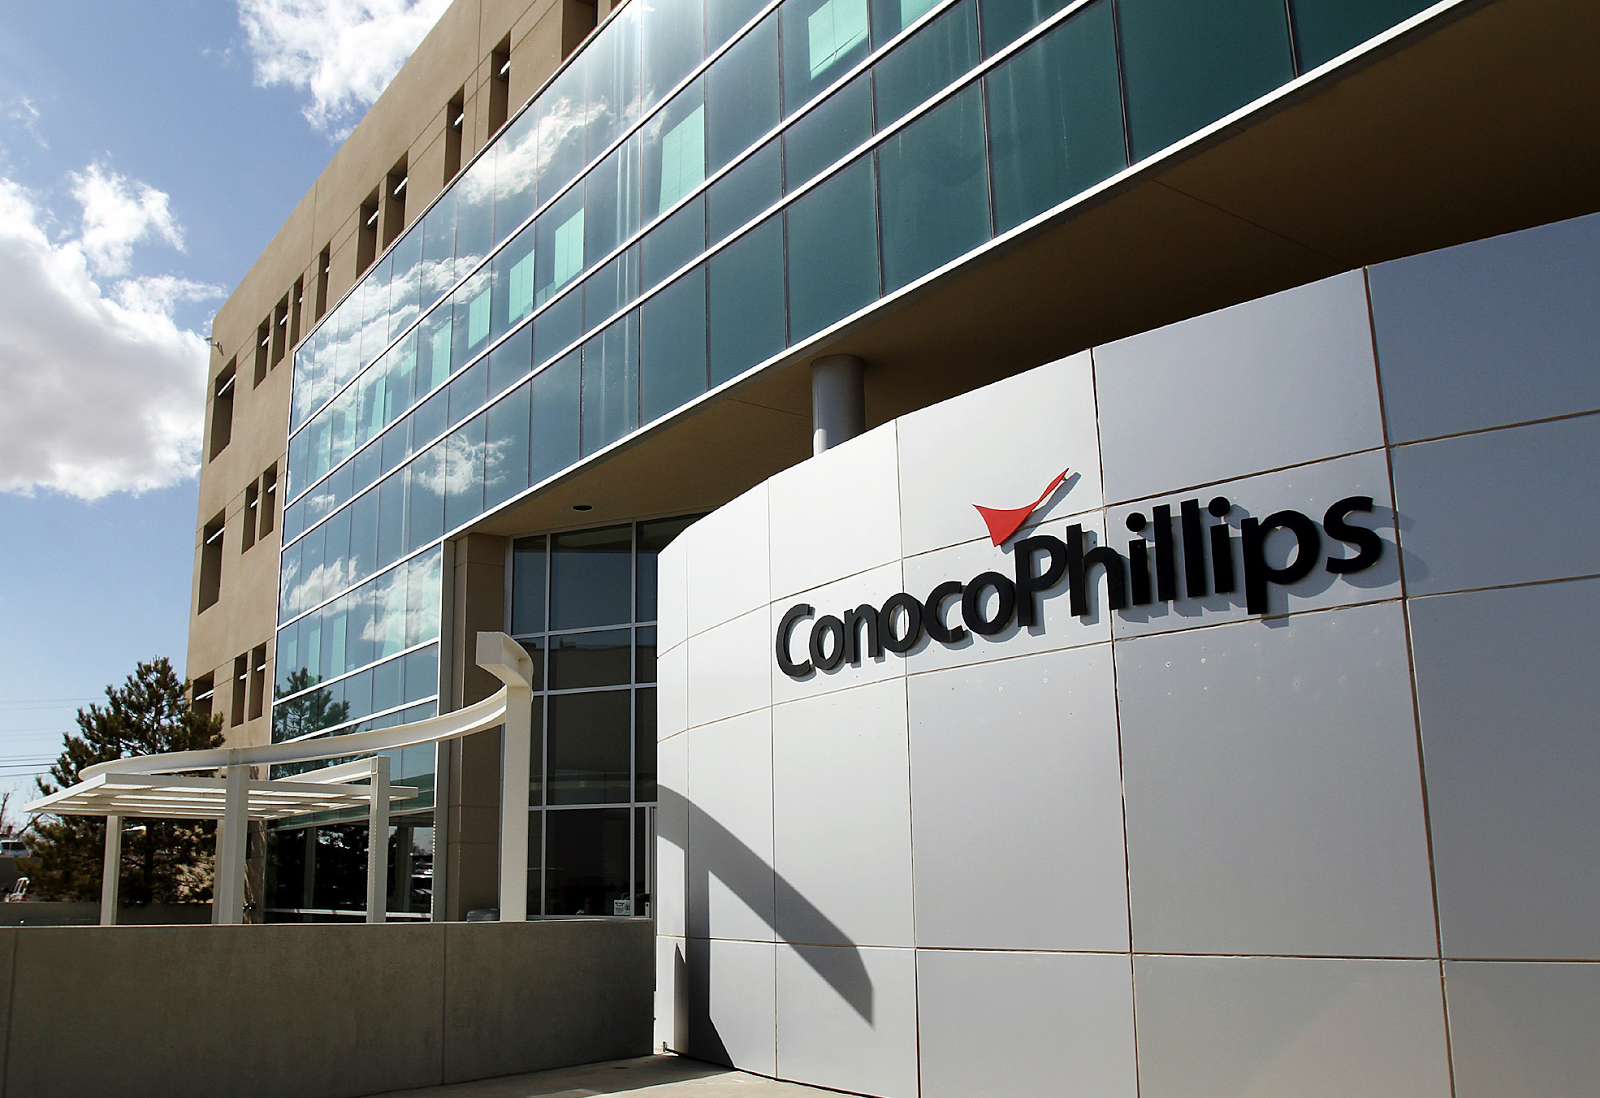 conocophillips Conocophillips, australia 58k likes conocophillips is a global exploration and production oil and gas company with headquarters in houston, texas.